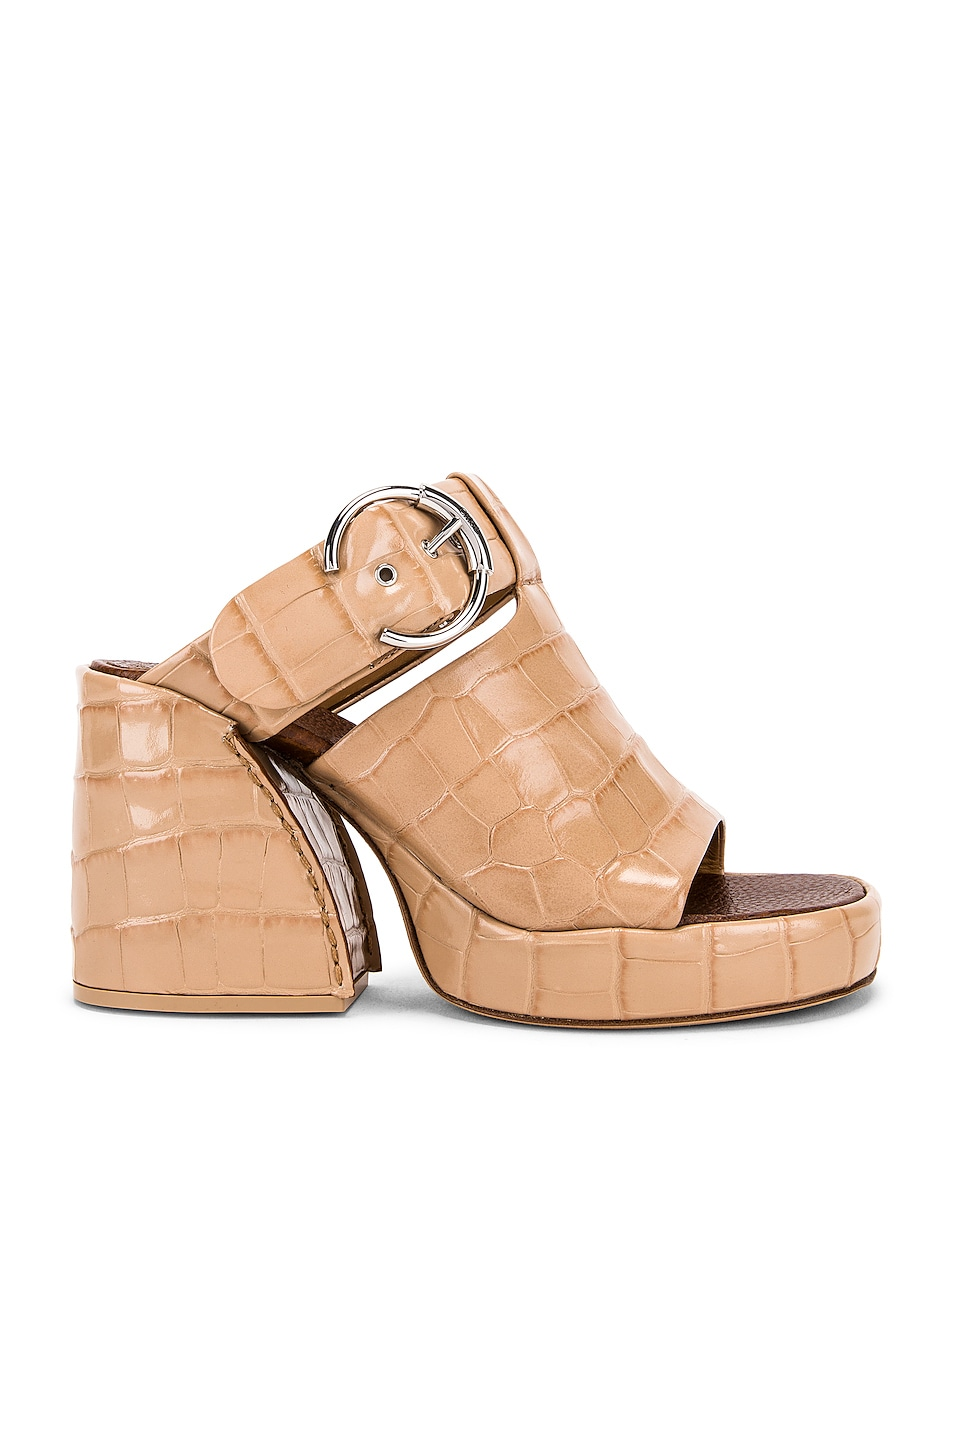 Image 1 of Chloe Buckle Platform Sandals in Nougat